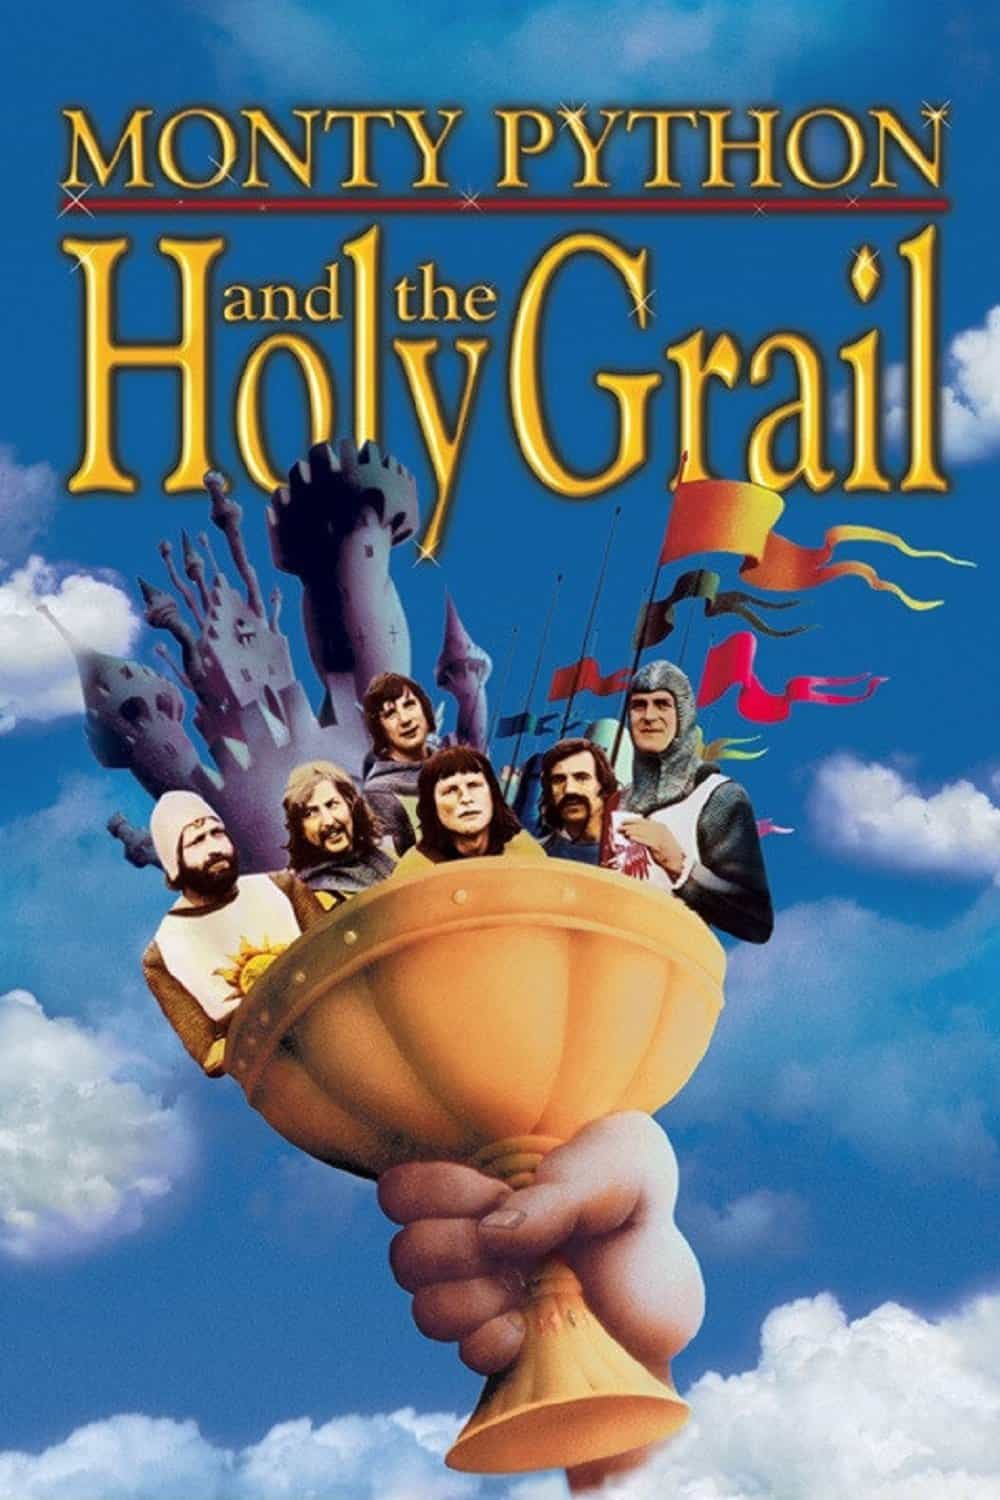 Monty Python and the Holy Grail,1975